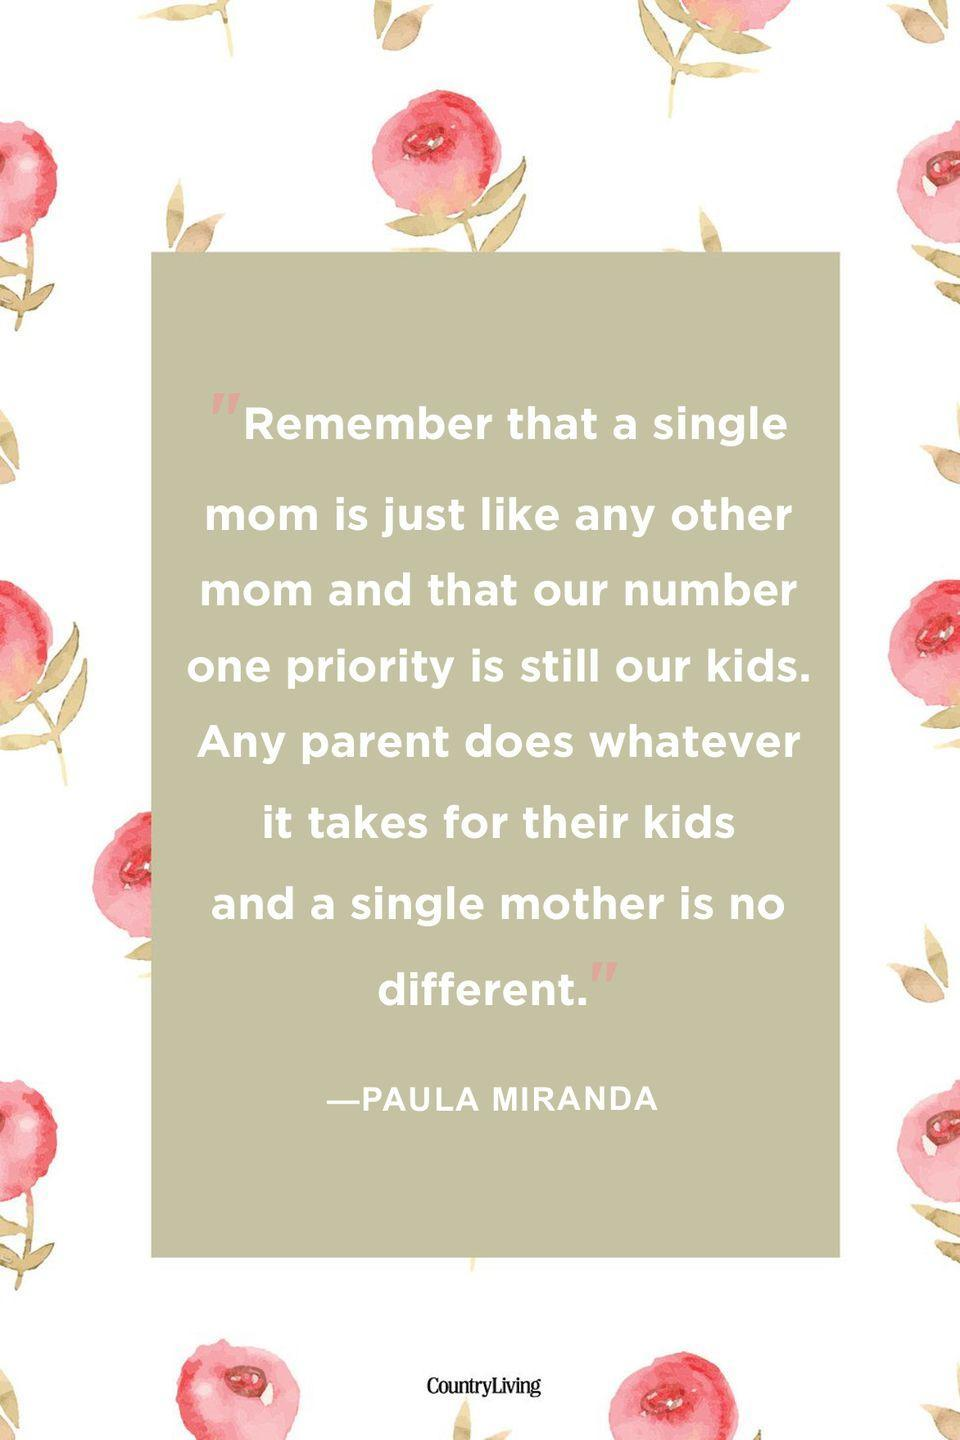 "<p>""Remember that a single mom is just like any other mom and that our number one priority is still our kids. Any parent does whatever it takes for their kids and a single mother is no different.""</p>"